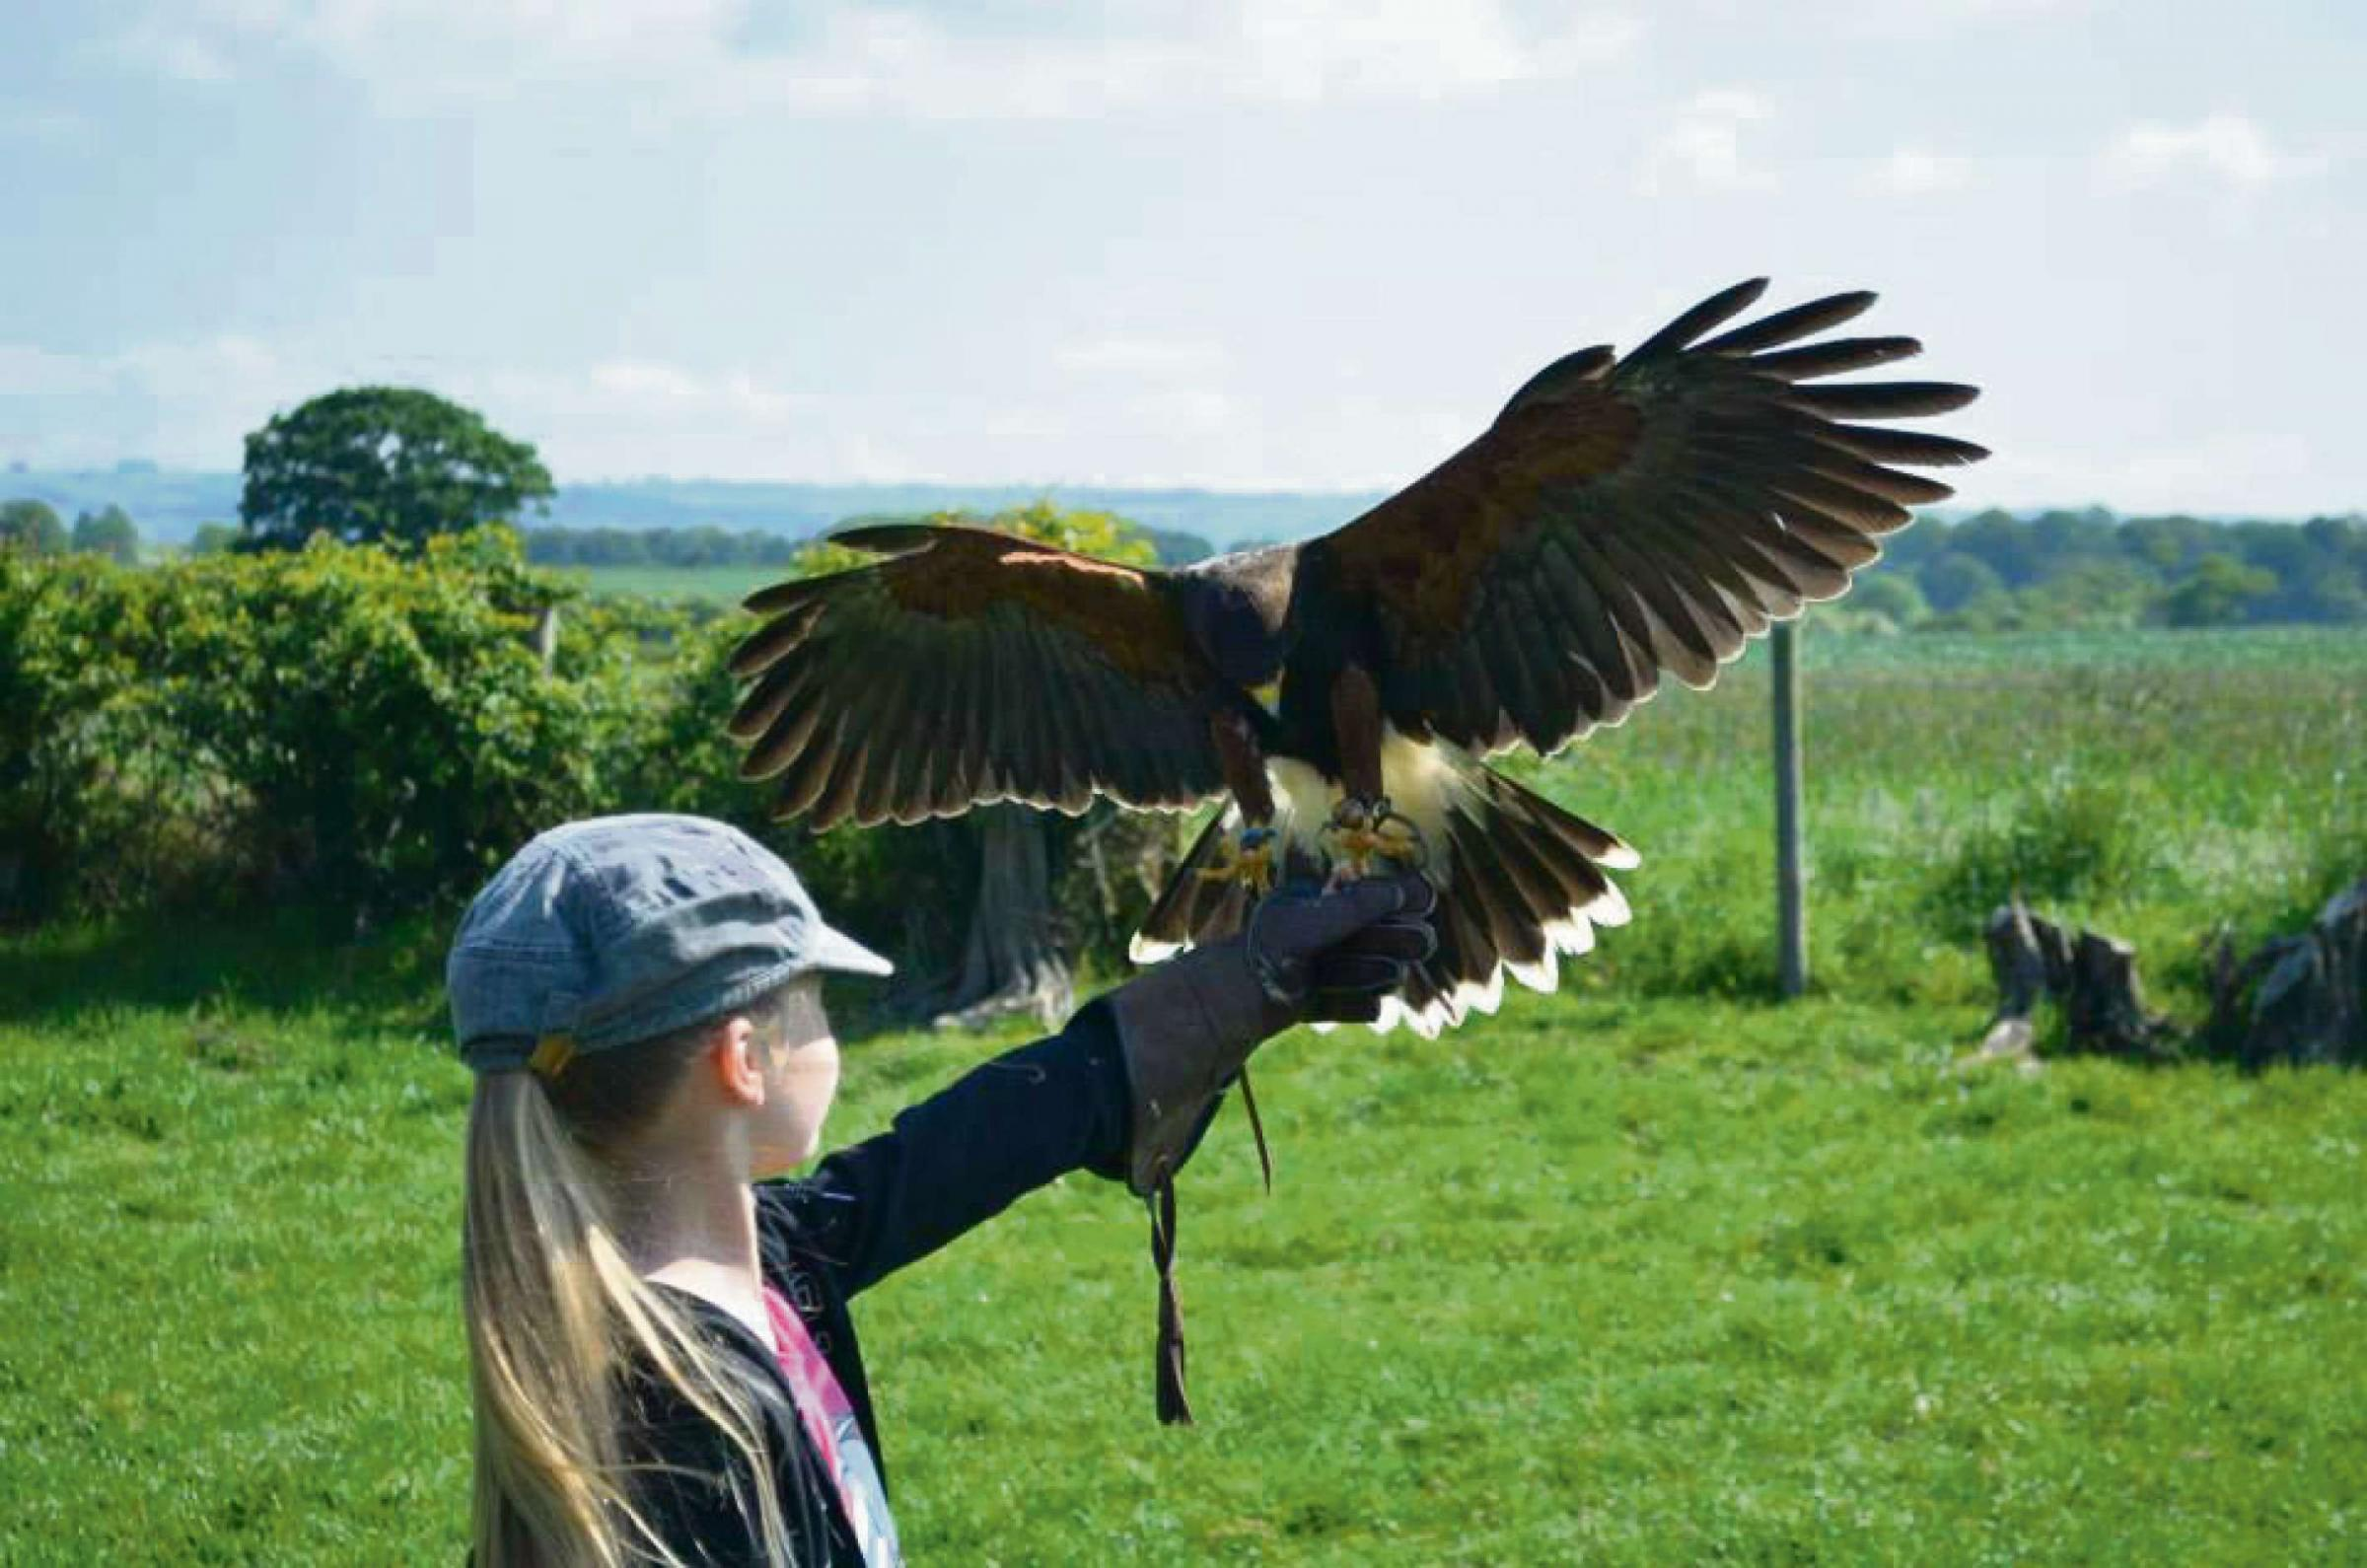 Falconry is one of the attractions at the Stretton Medieval Fair.